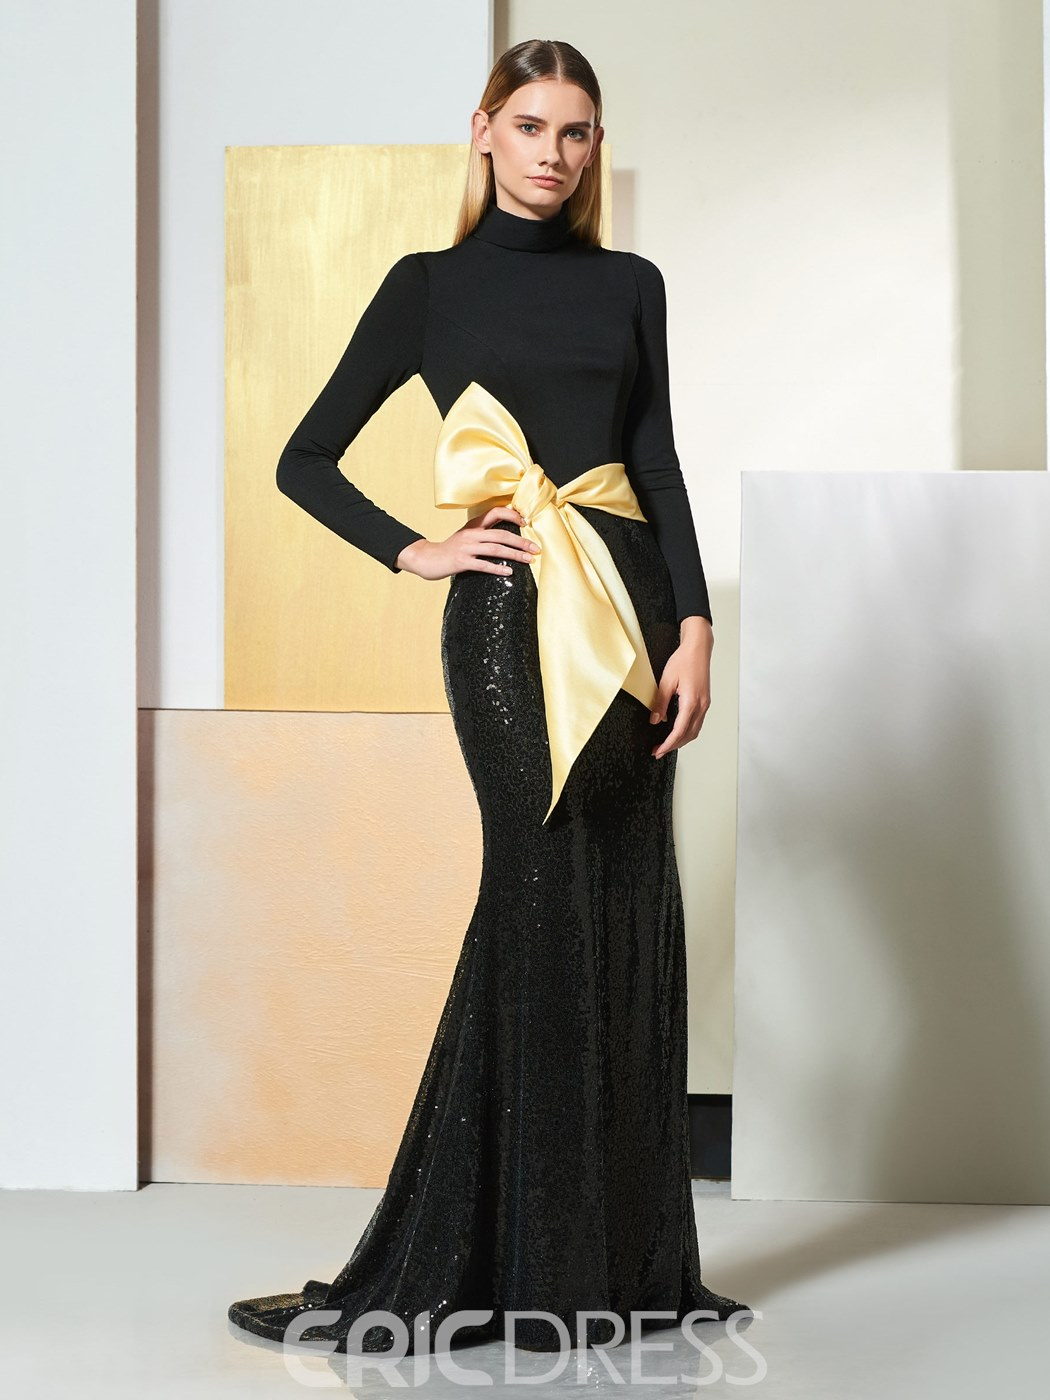 Ericdress Vintage High Neck Mermaid Black Evening Dress With Bowknot